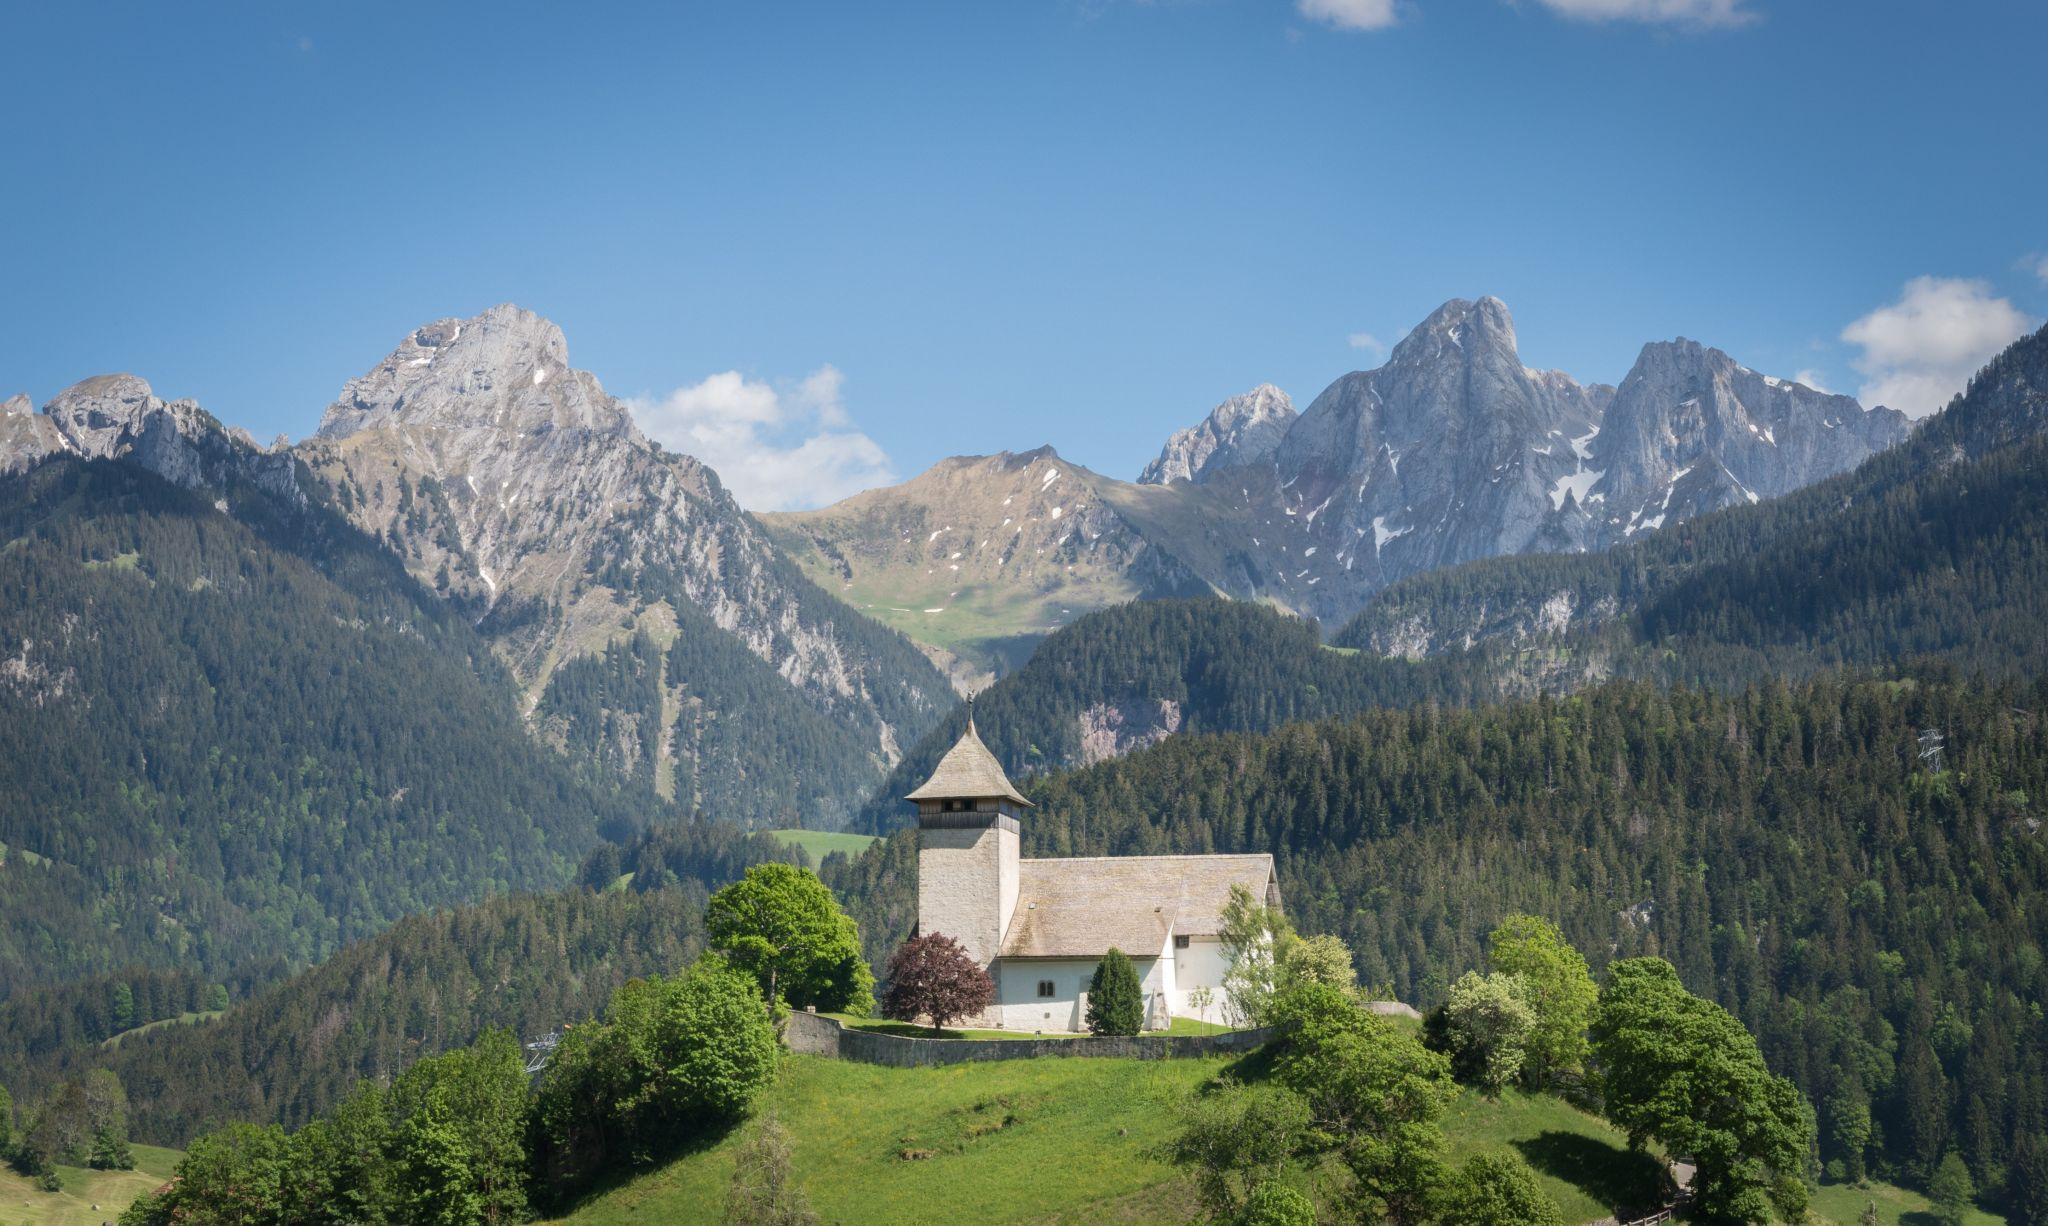 Le Temple - Chateau d'Oex church, Switzerland